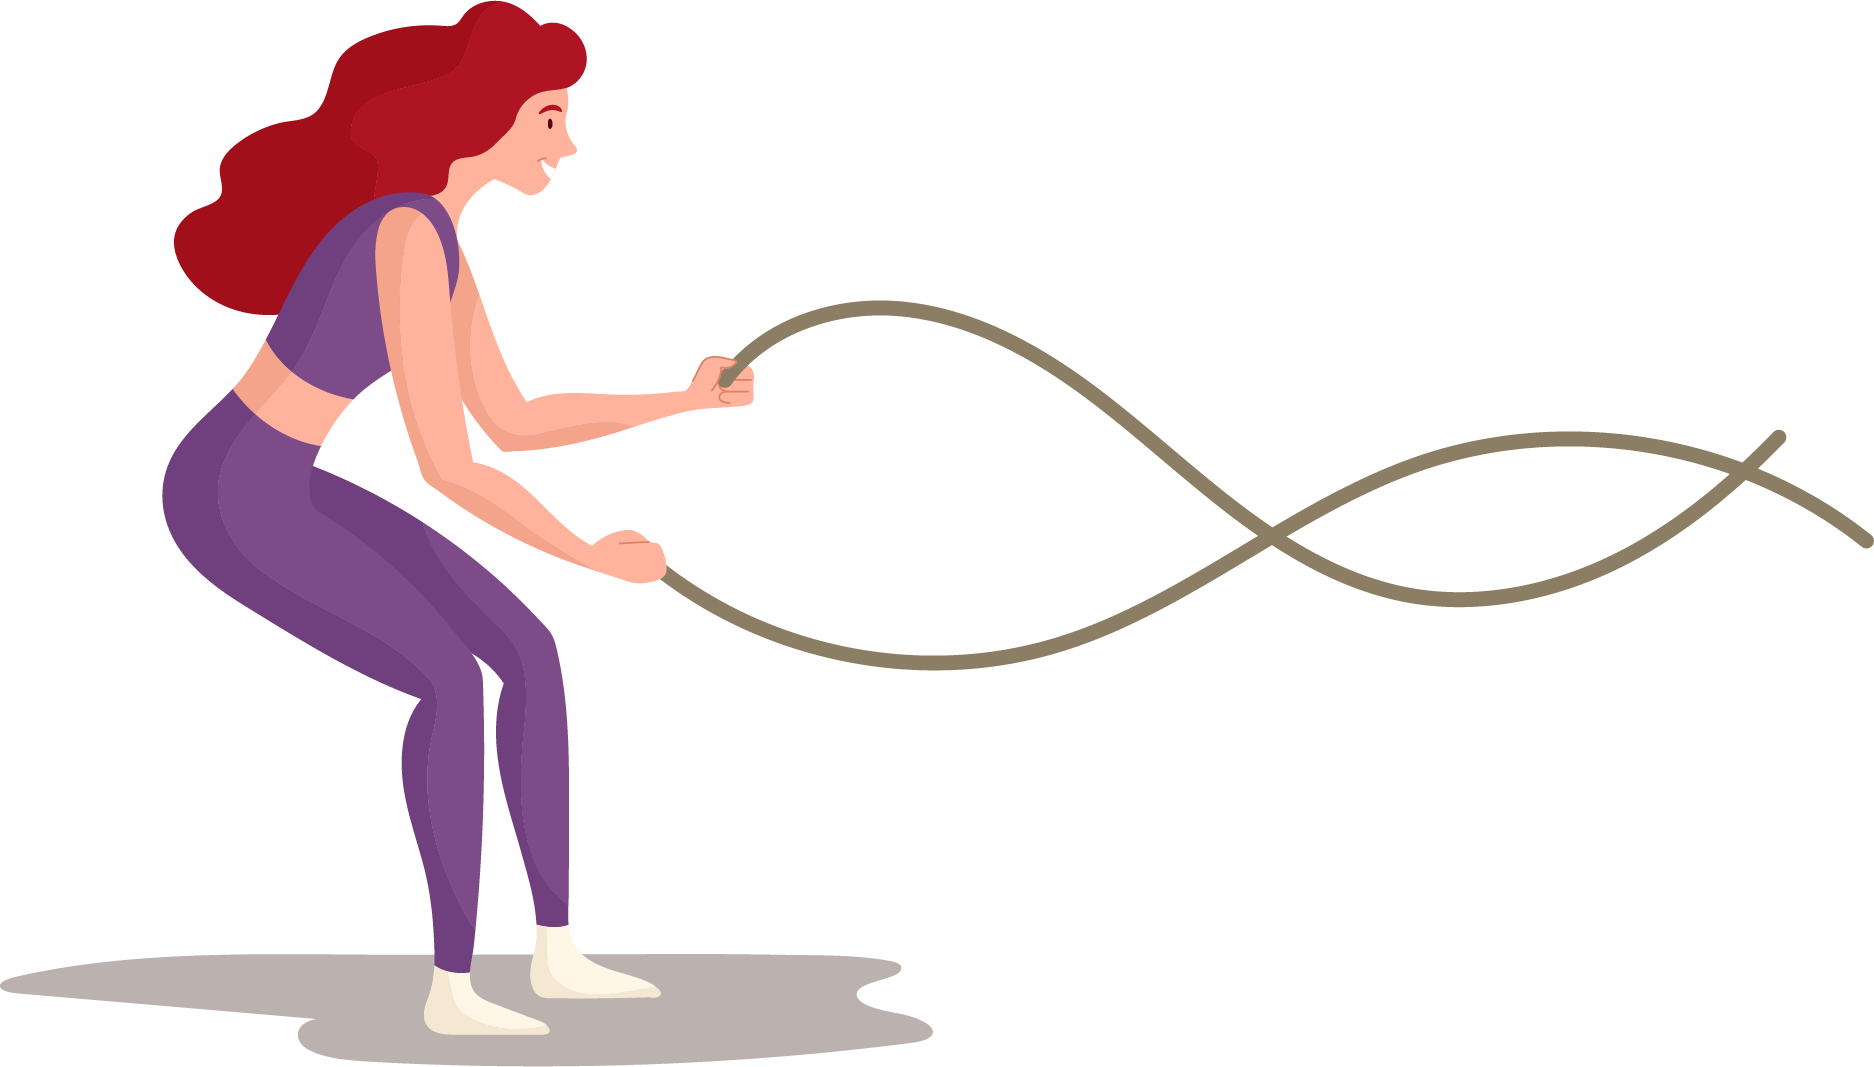 ropes-lady-remnant-ministries-beloved-workout-gaylynn